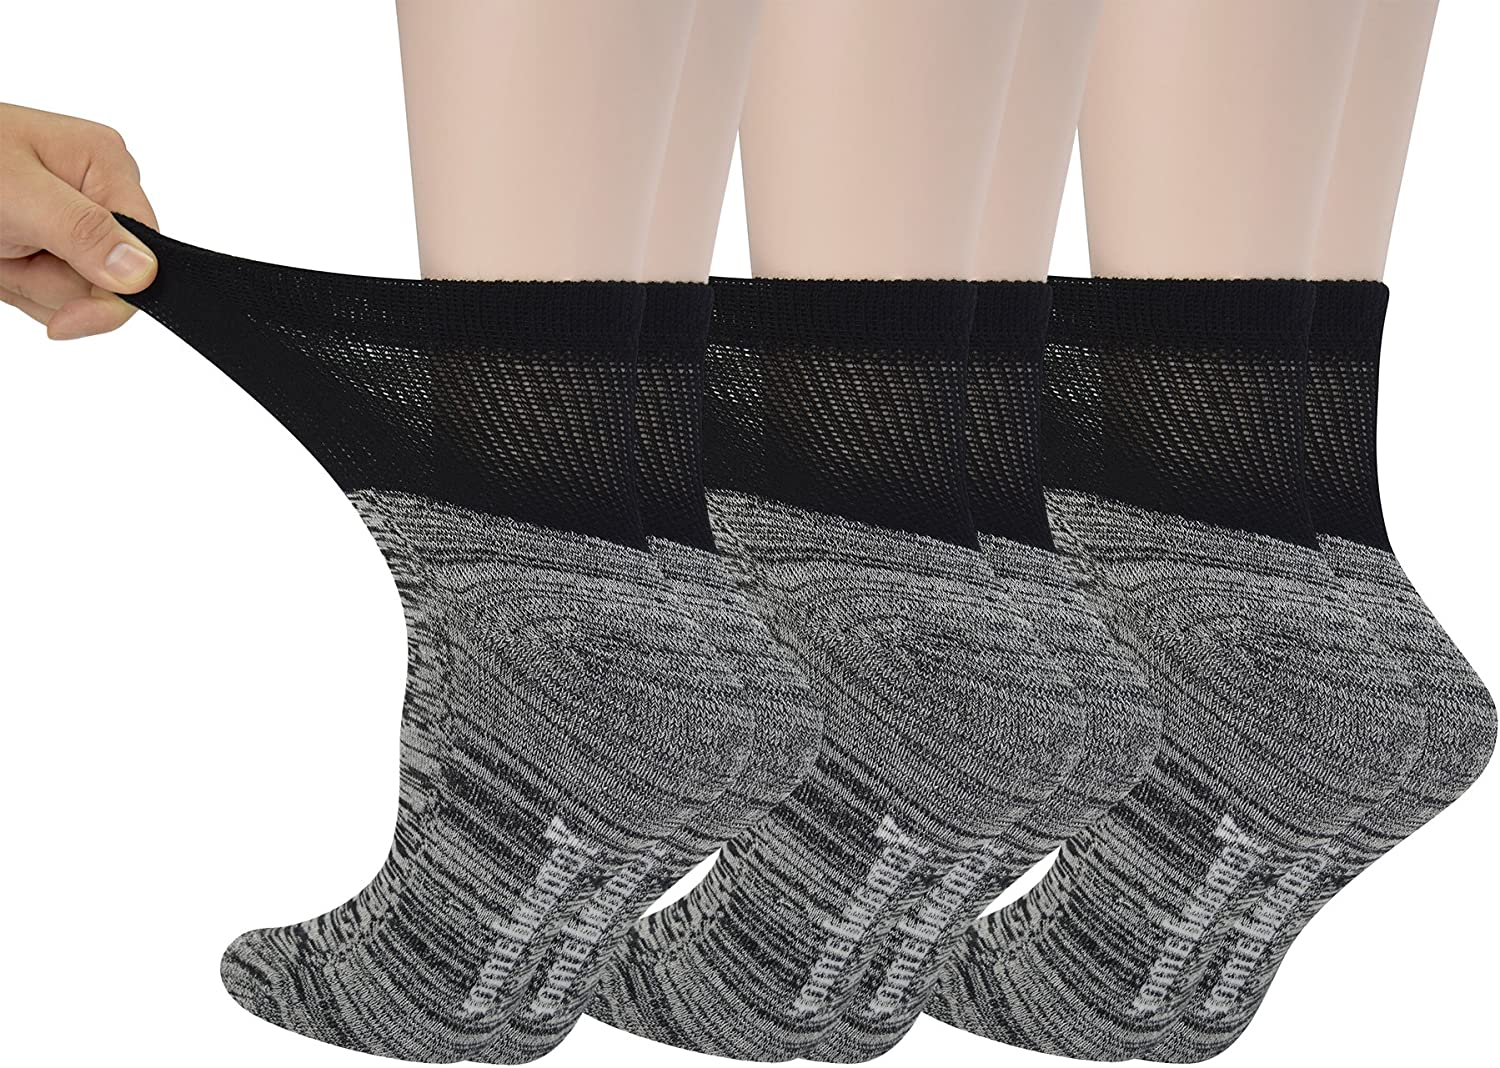 Yomandamor Women's 6 Pairs Bamboo Diabetic Ankle Socks with Non-Binding Top And Cushion Sole,L Size(Socks Size:9-11)